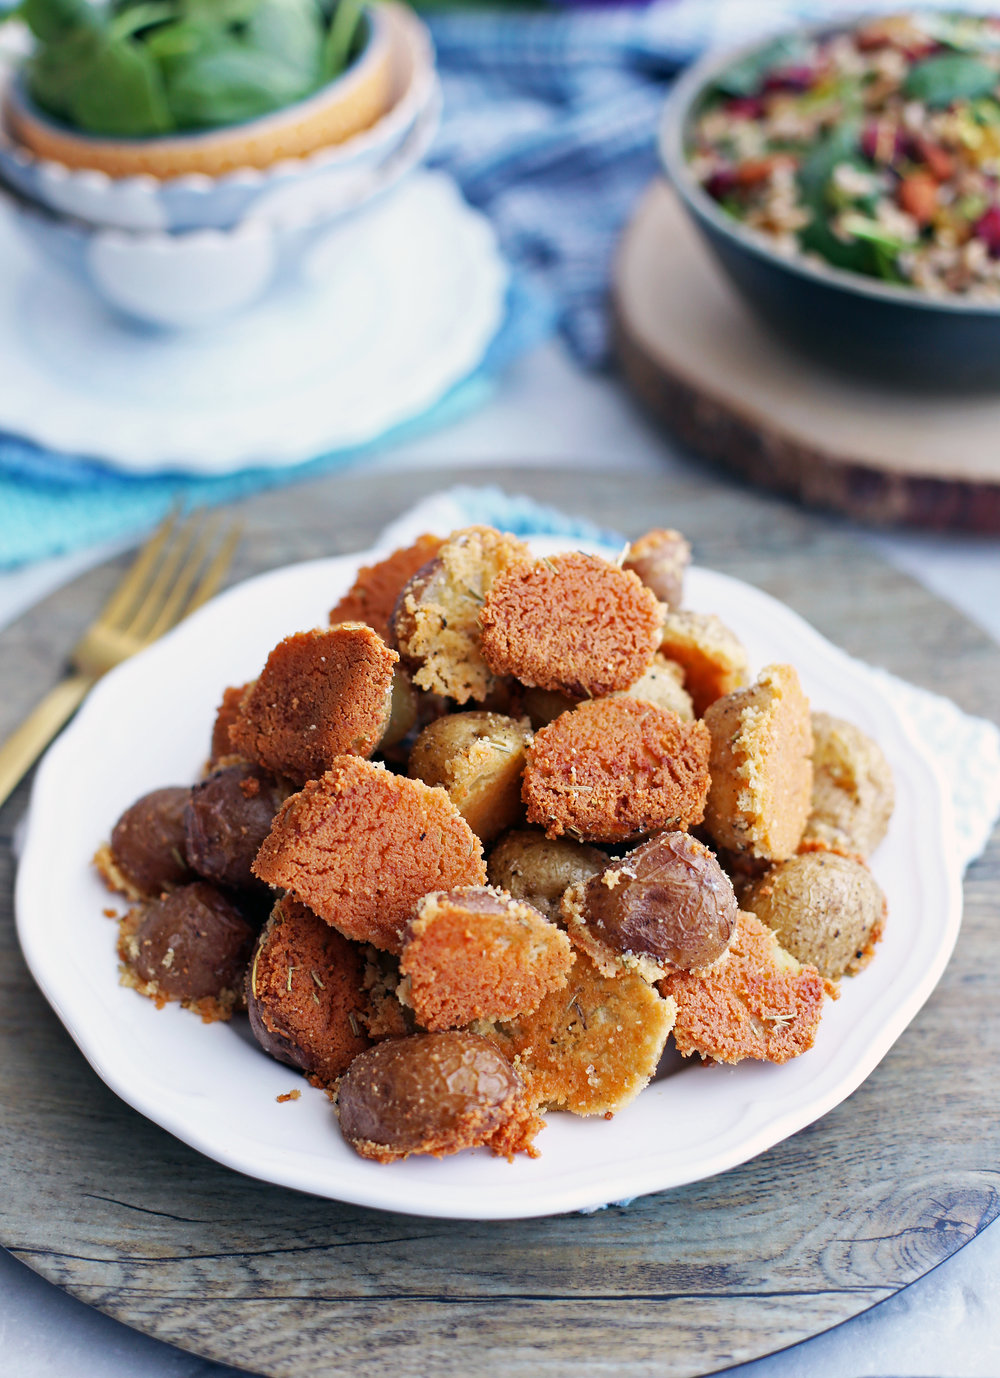 Easy, delicious Crispy Parmesan Crusted Baby Potatoes on a white plate.